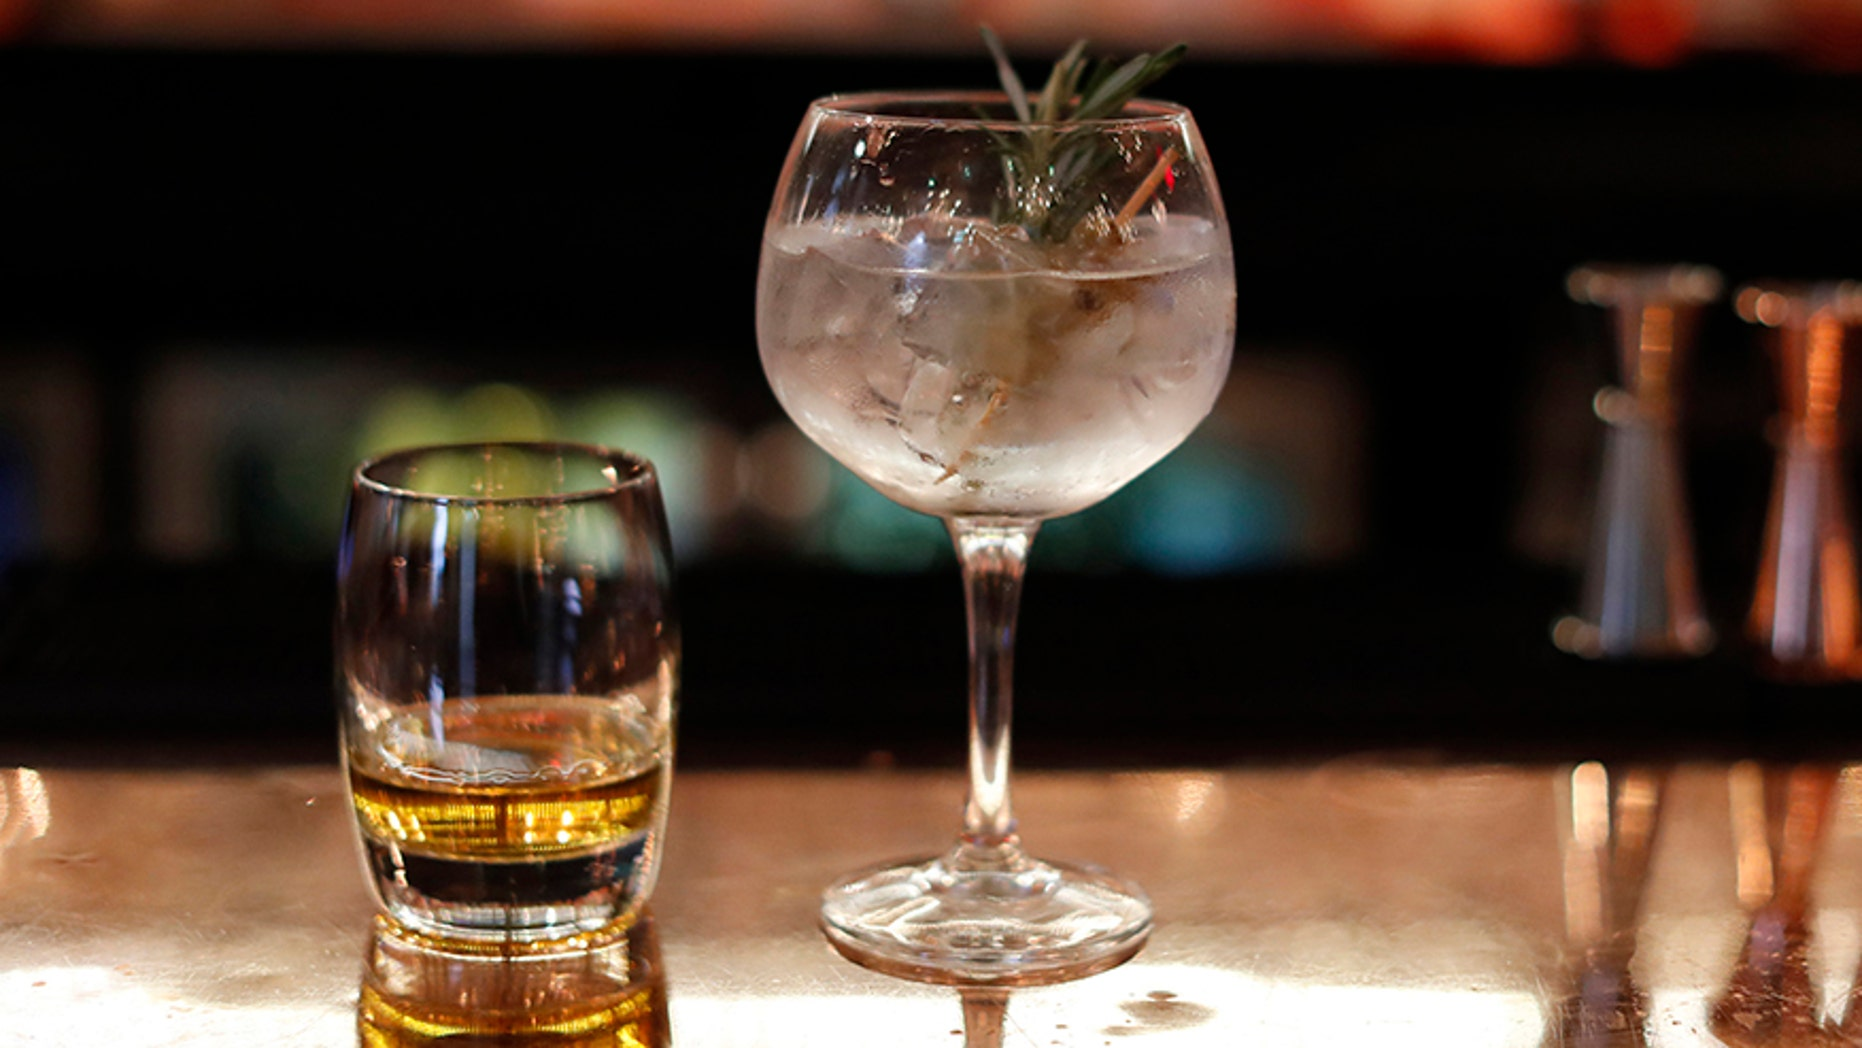 A Gin Cocktail and glass of whisky sit side by side on a bar.